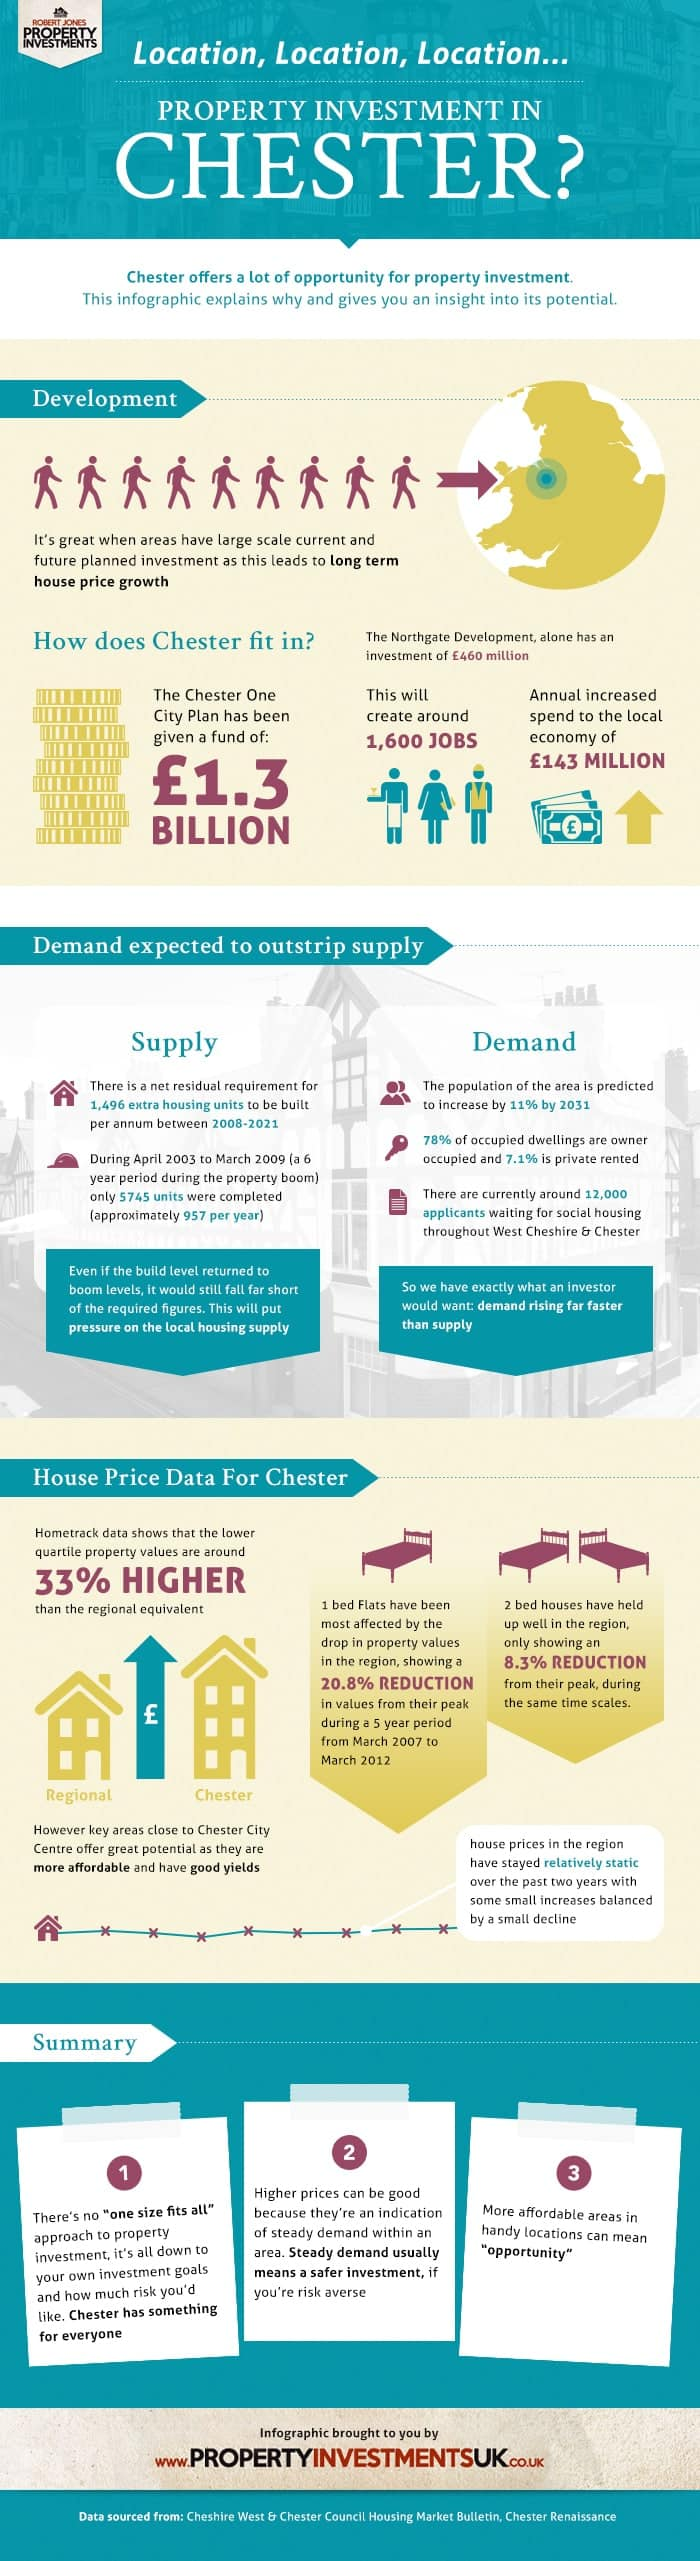 Property Investment Chester Infographic